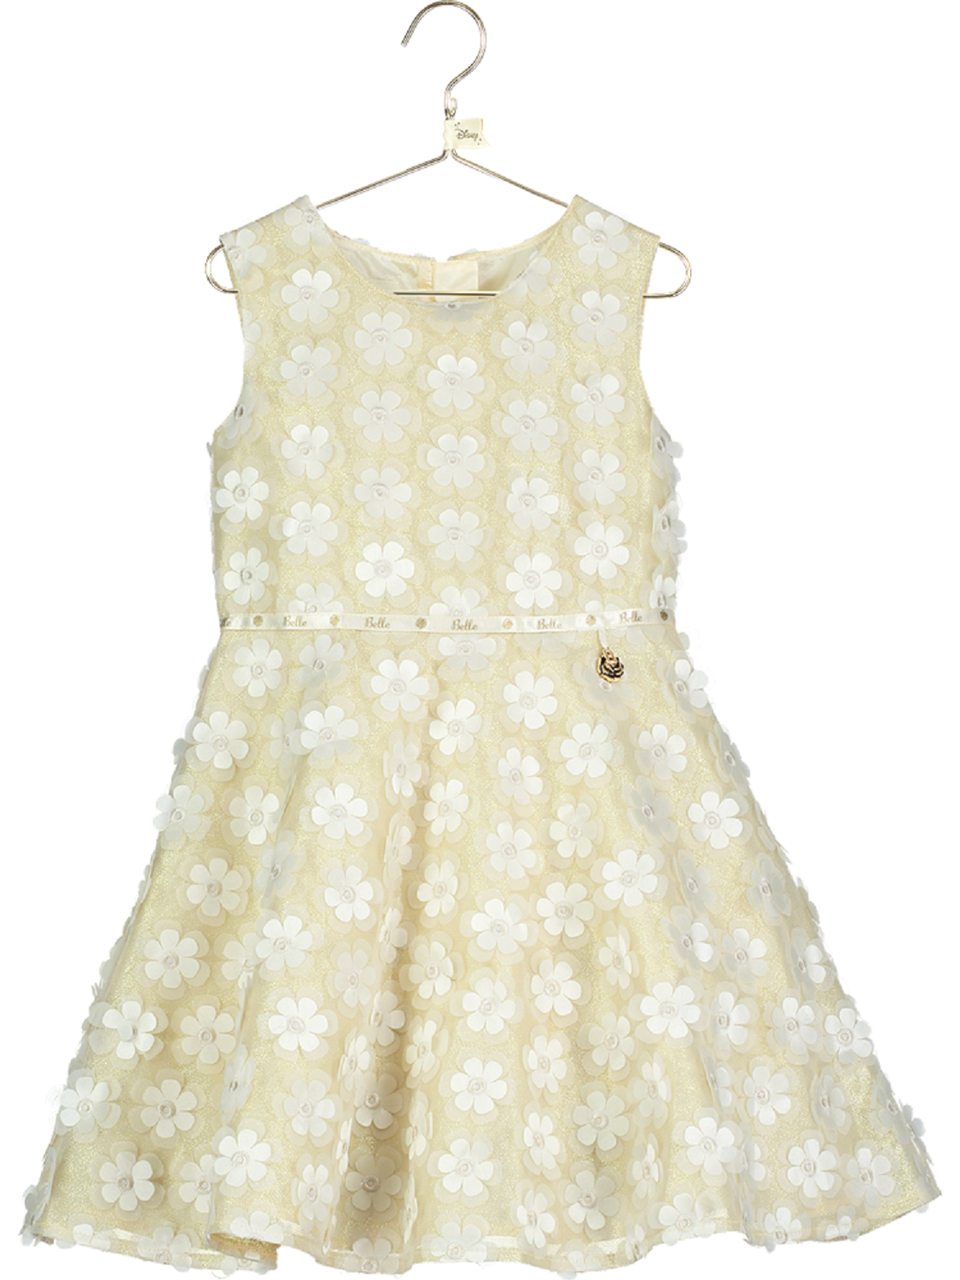 Girls Official Disney Boutique Belle Smock Occasion Party Wedding Dress 2-10yrs